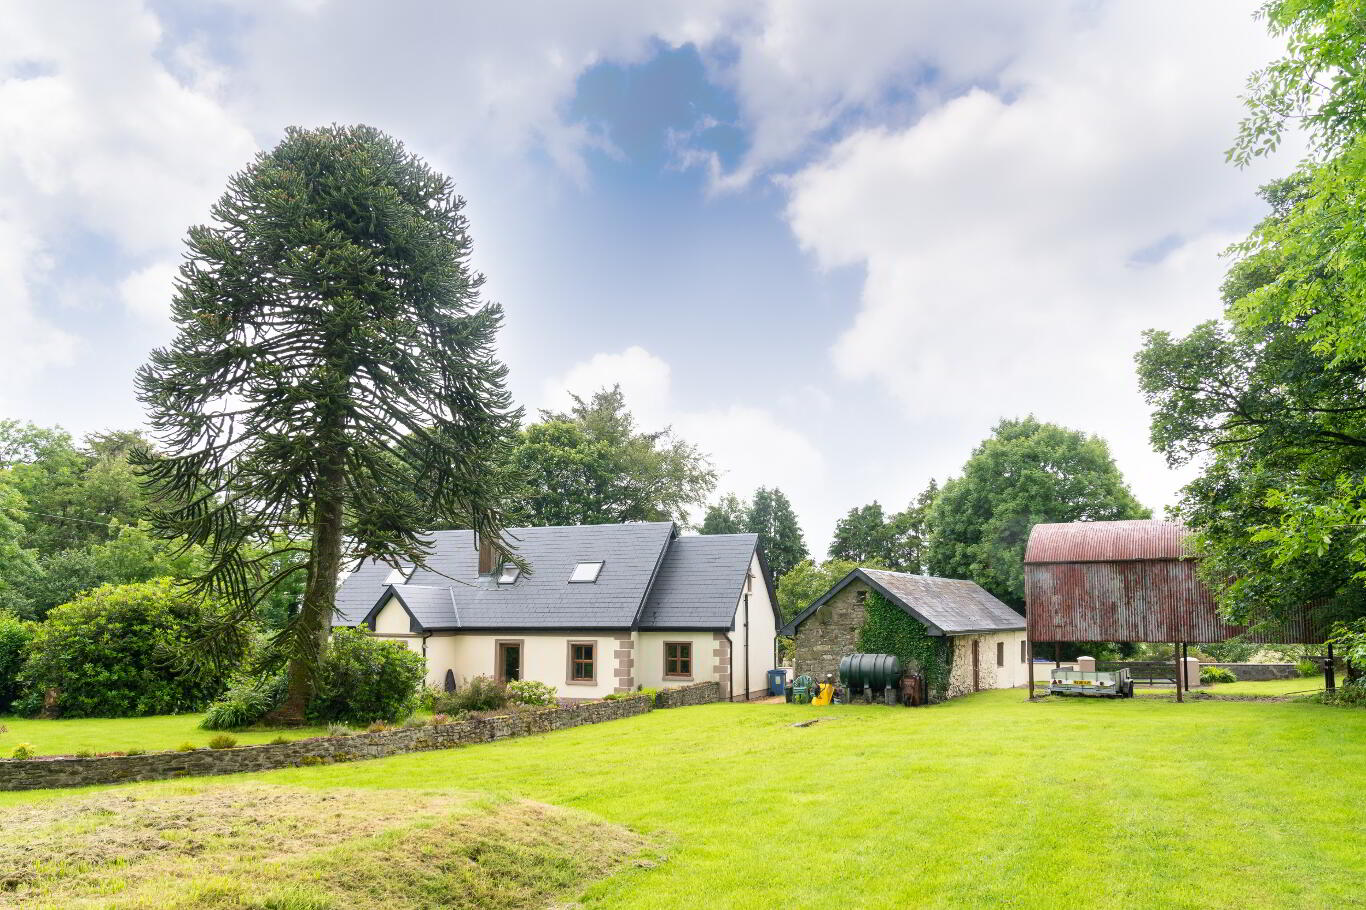 Ballyhaunis, Mayo Property for sale, houses for - sil0.co.uk